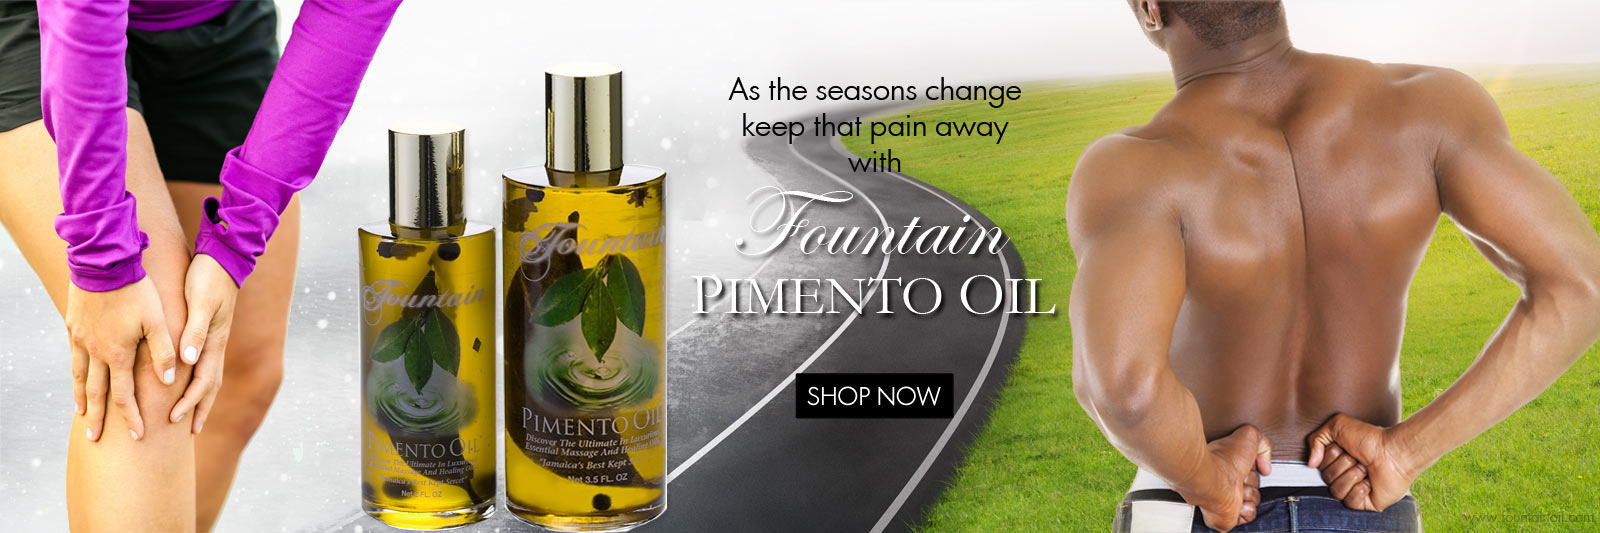 Fountain Pimento Oil for all your aches and pain